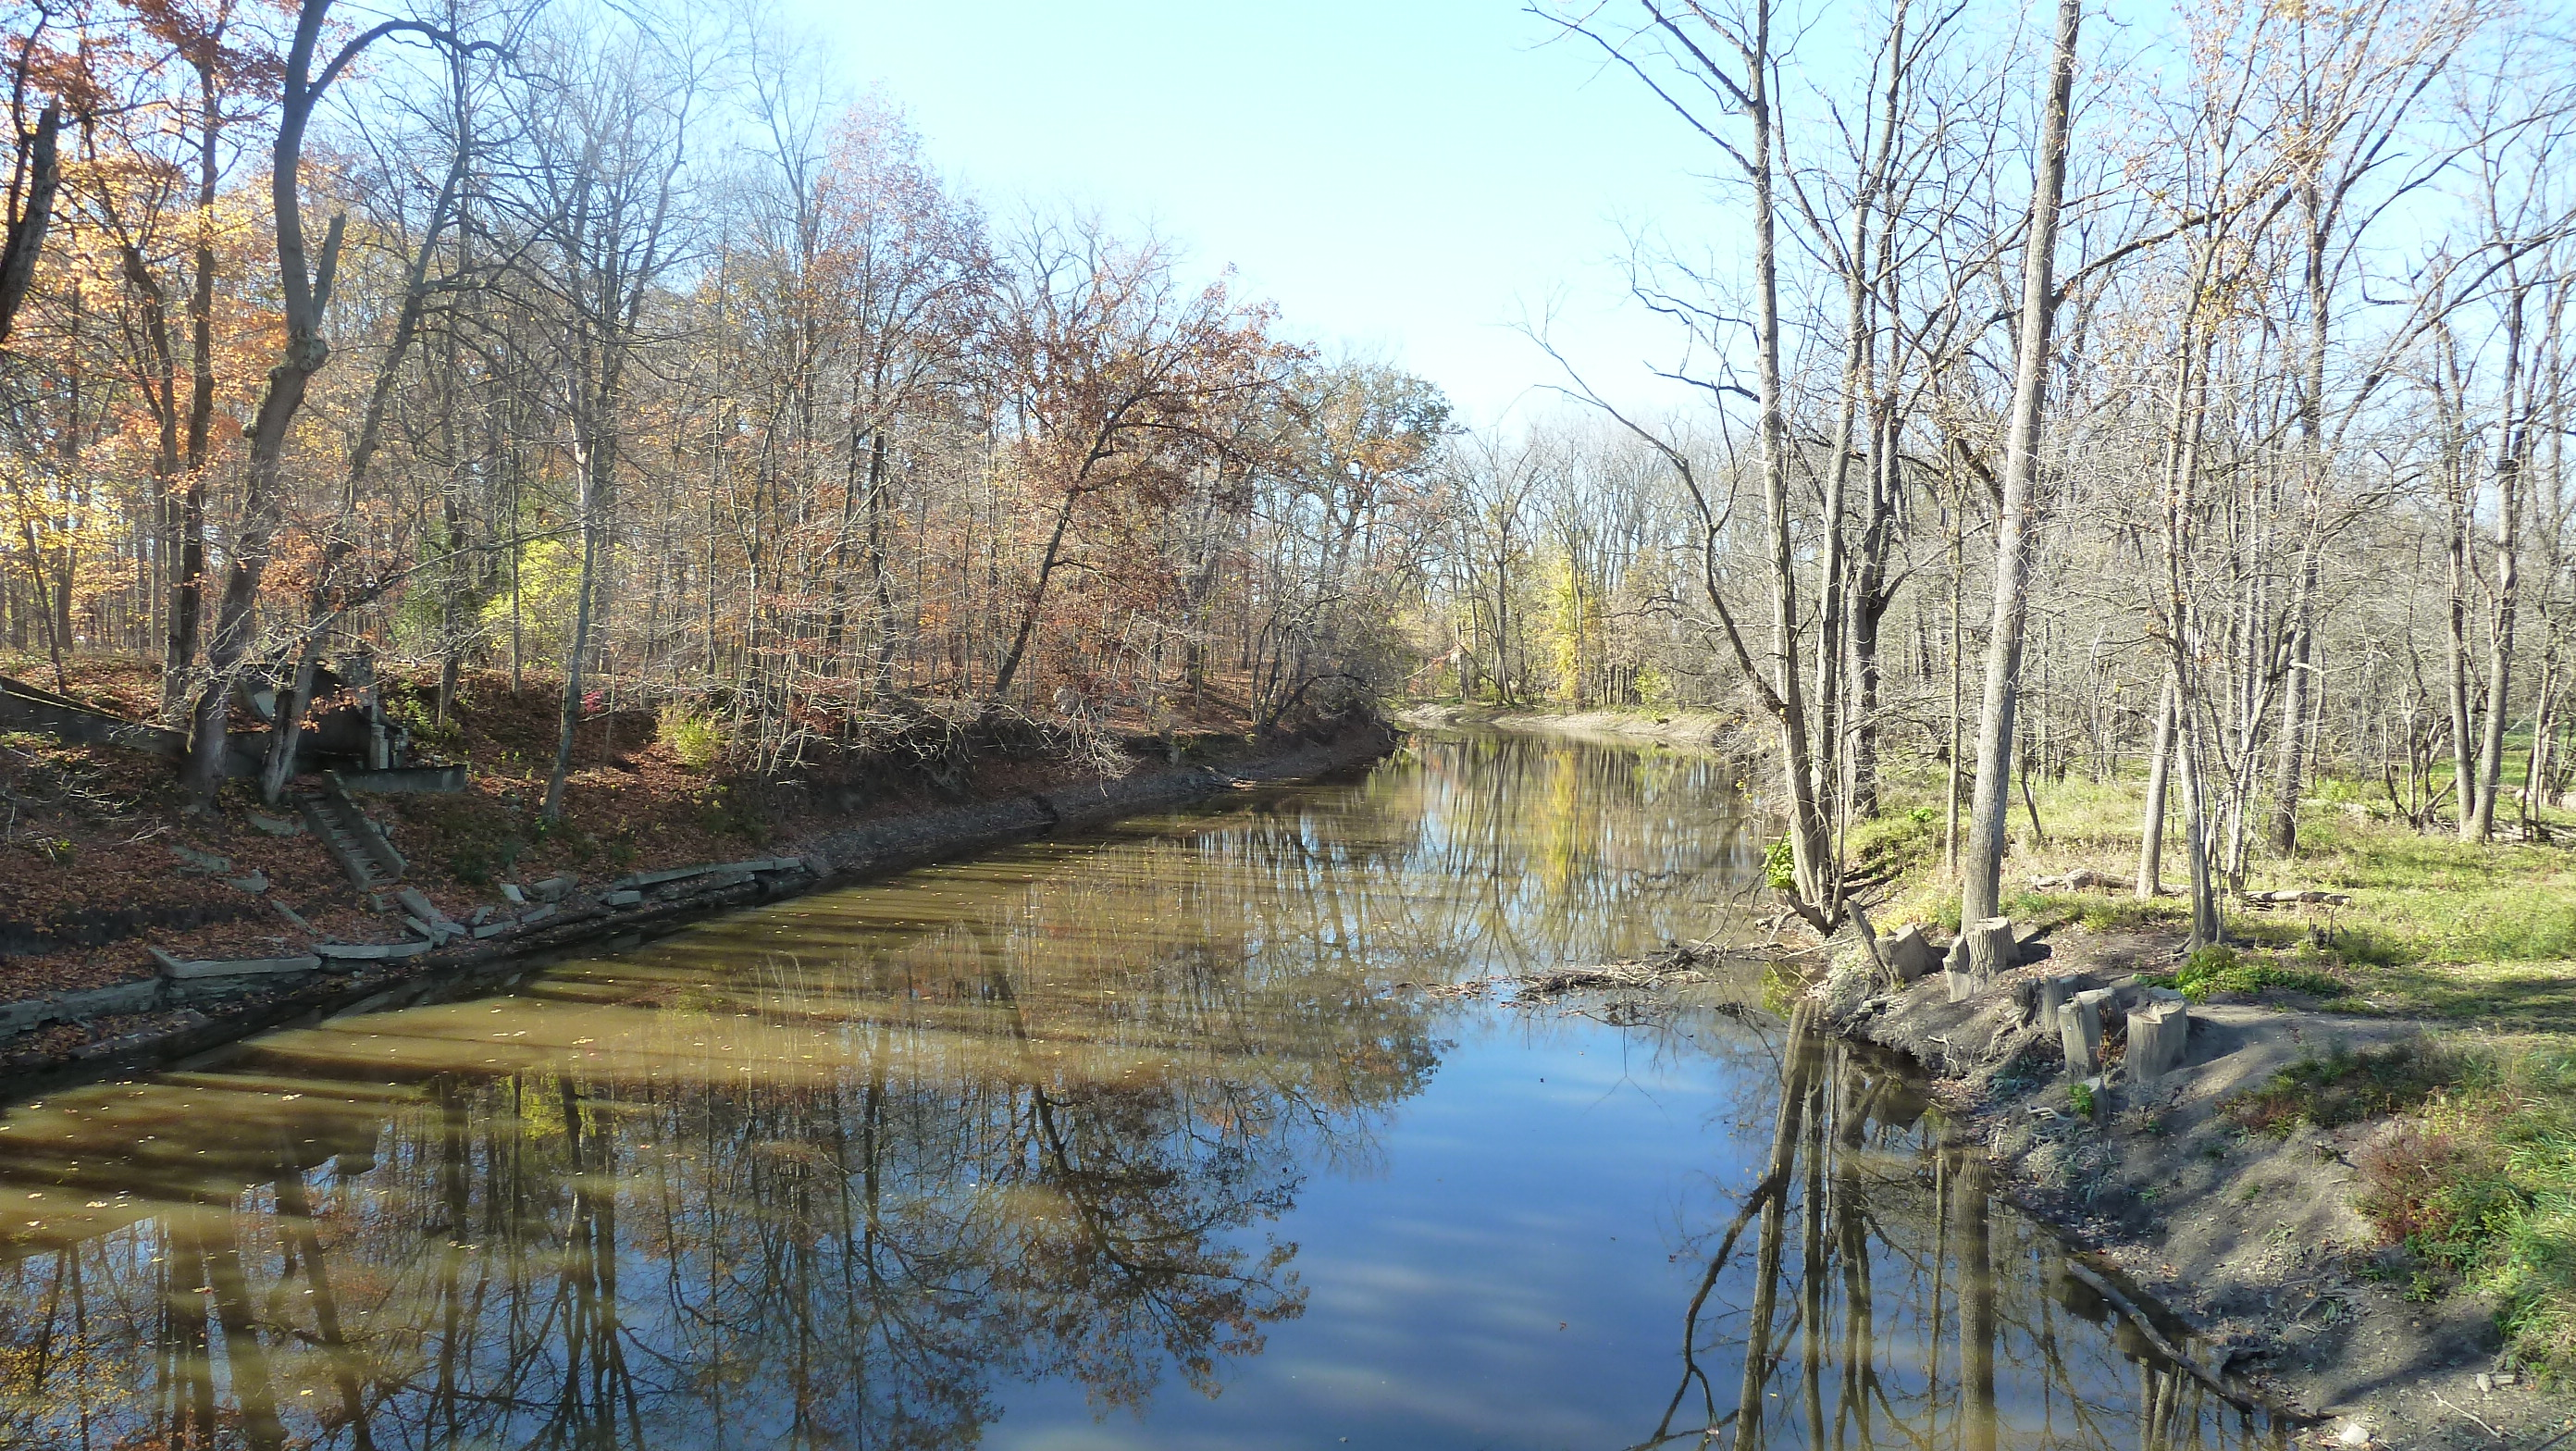 (2) Looking upstream of the gauge on the Scioto River in La Rue. Photo taken by NWS CLE Hydrologist.